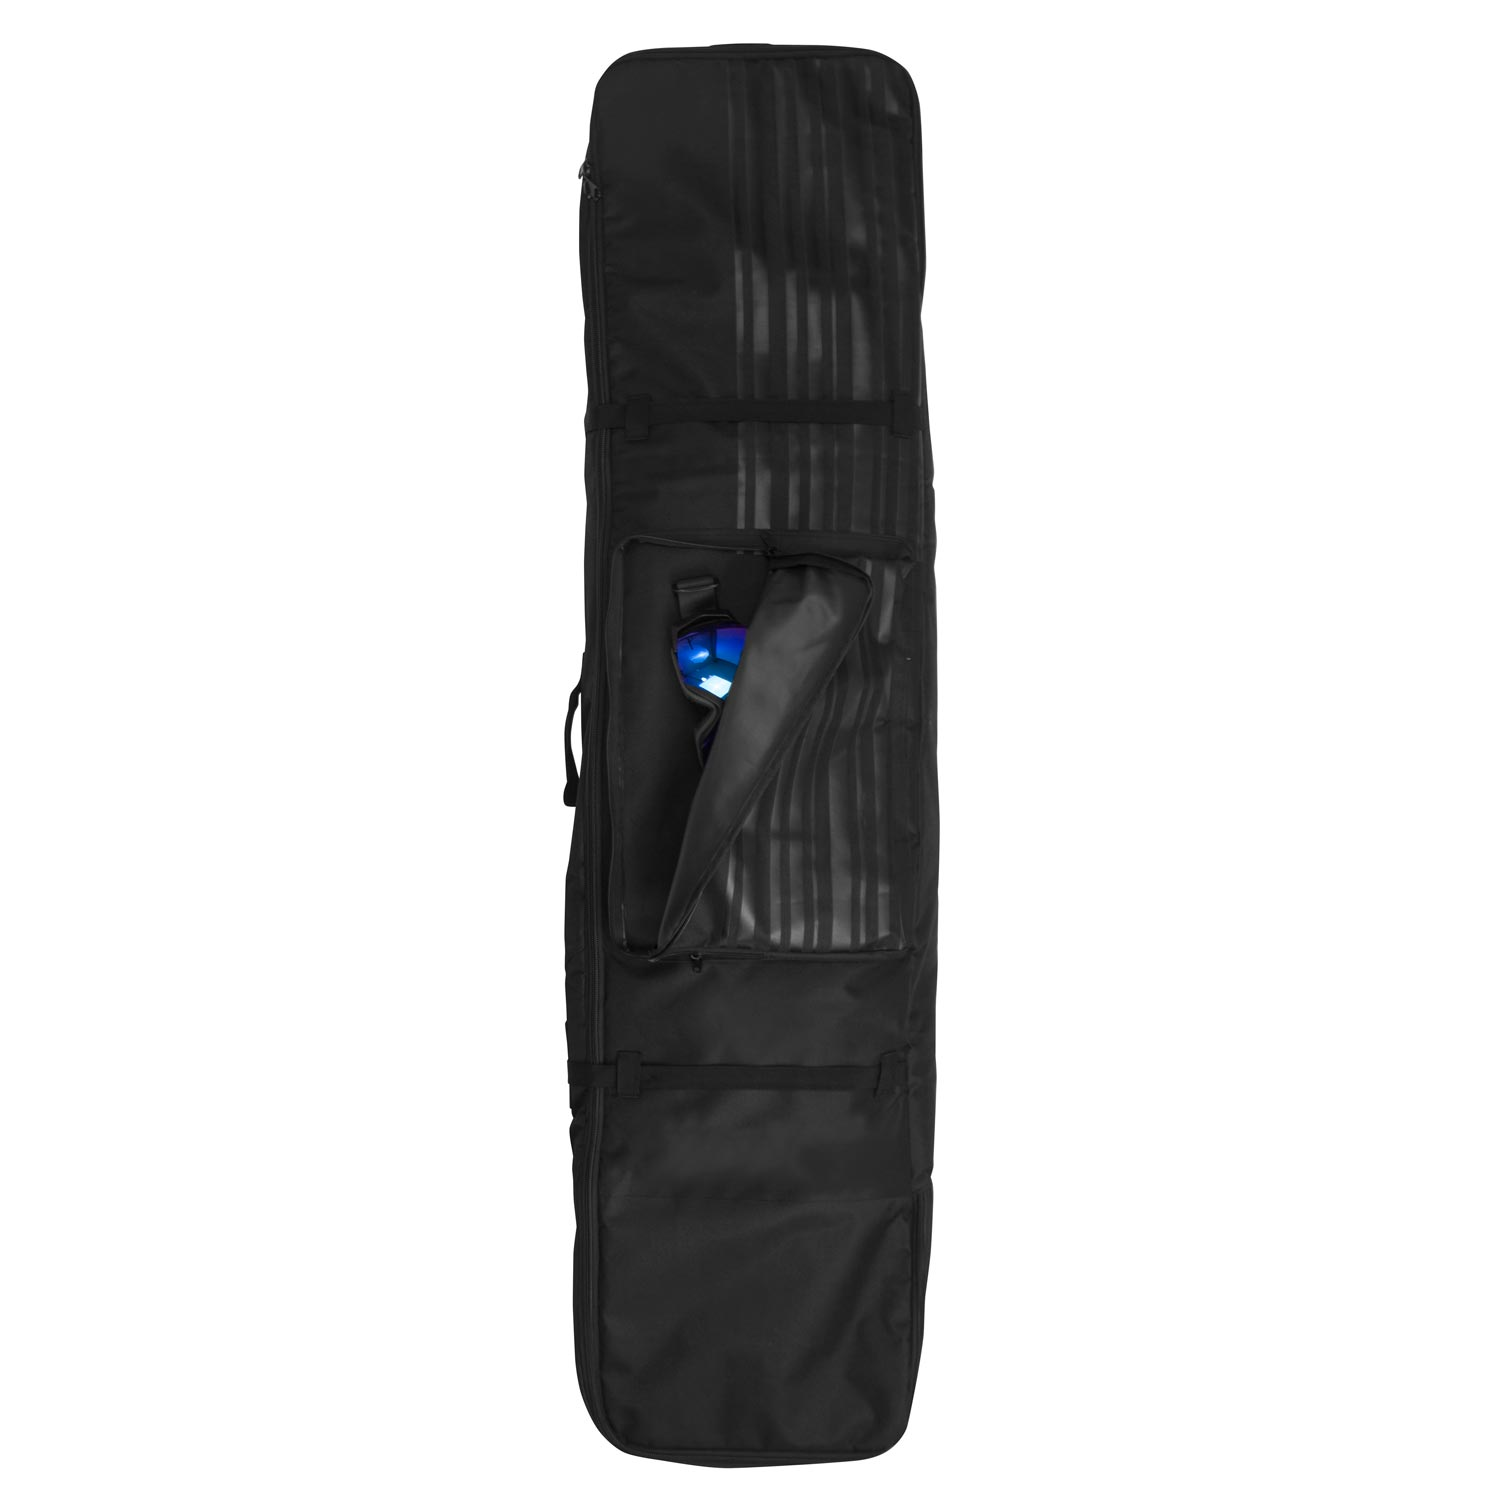 Winterial Snowboard Bag   Carrying Bag   Snow Gear   Snowboard   Black   WHEELED BAG by Winterial